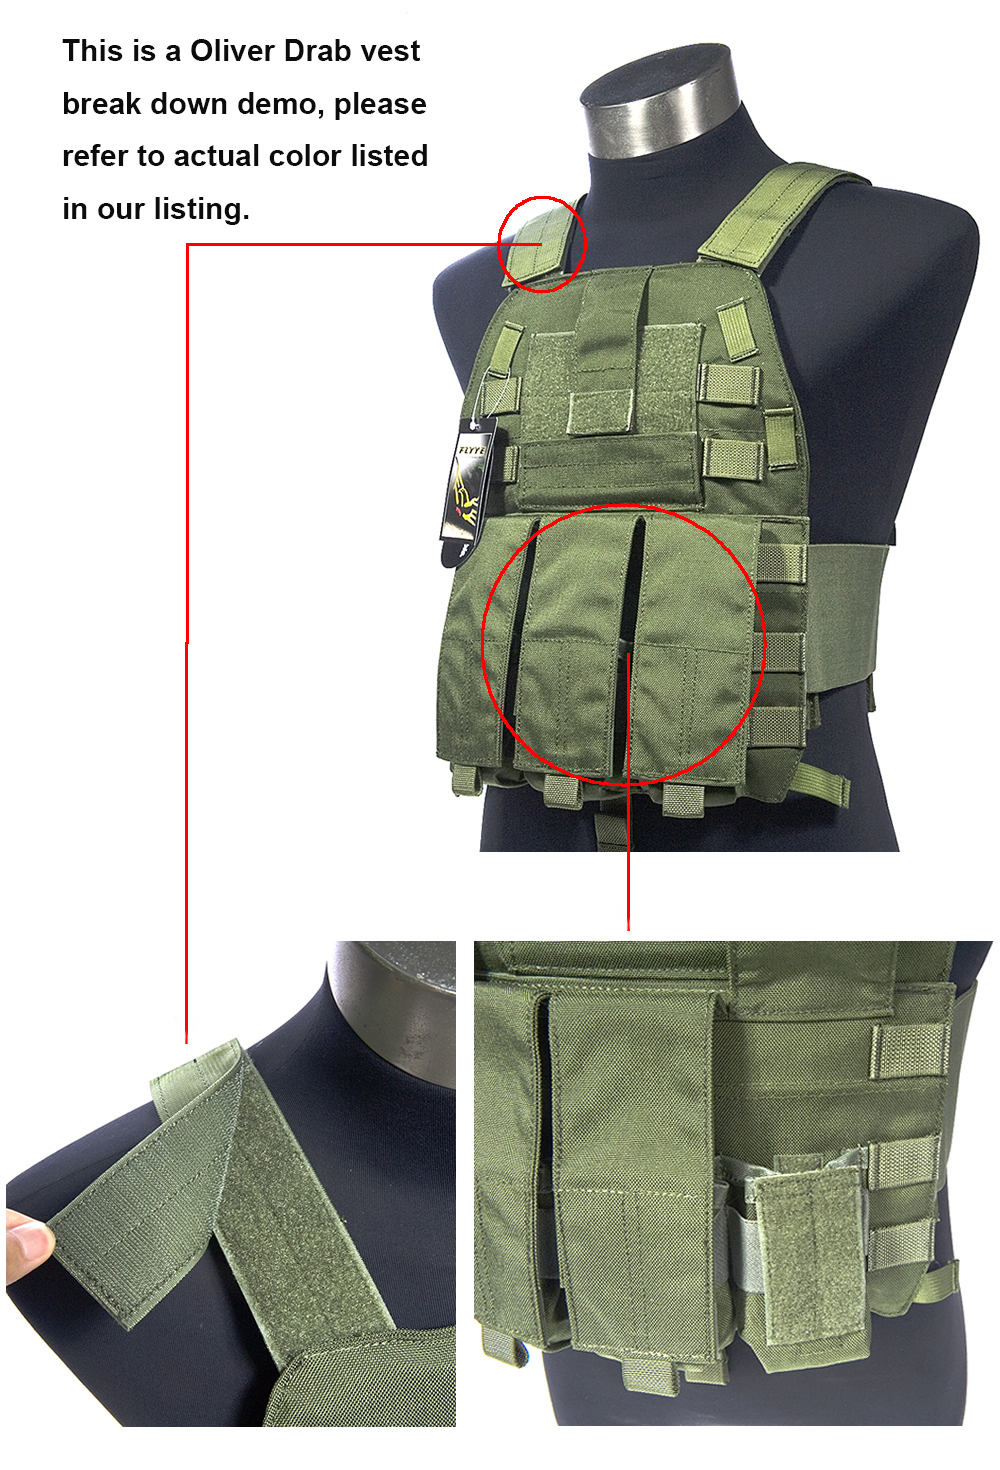 цена на MILITECH Mil Spec Military LT6094K Oliver Drab OD Plate Carrier Combat Molle Tactical Vest Army Military Combat Vests Carrier